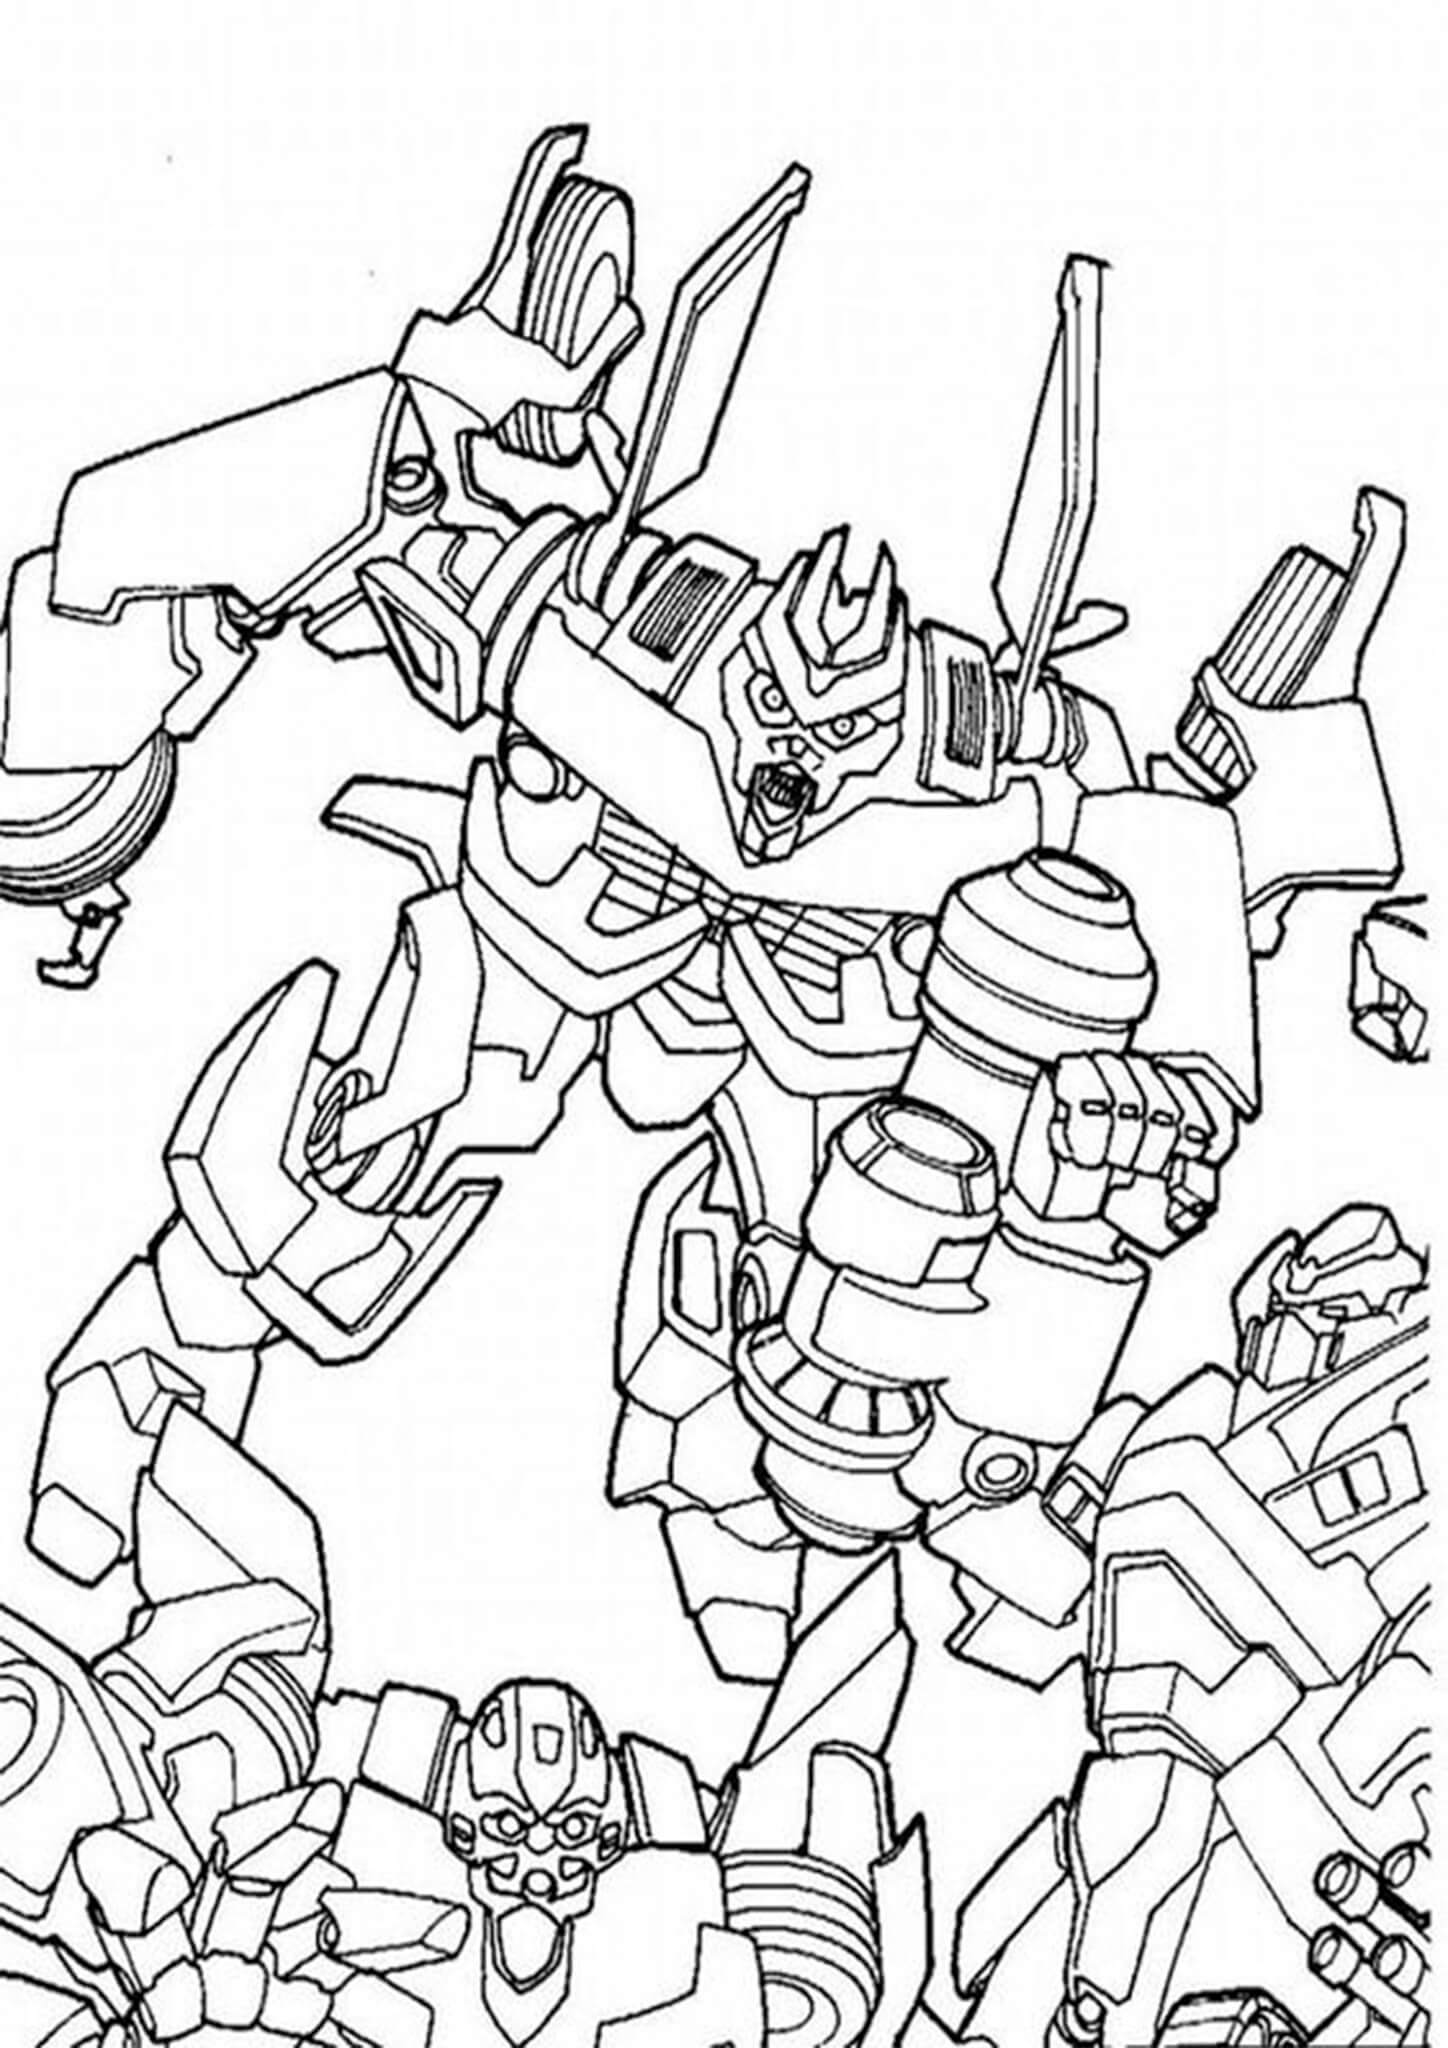 coloring printouts hard coloring pages for adults best coloring pages for kids printouts coloring